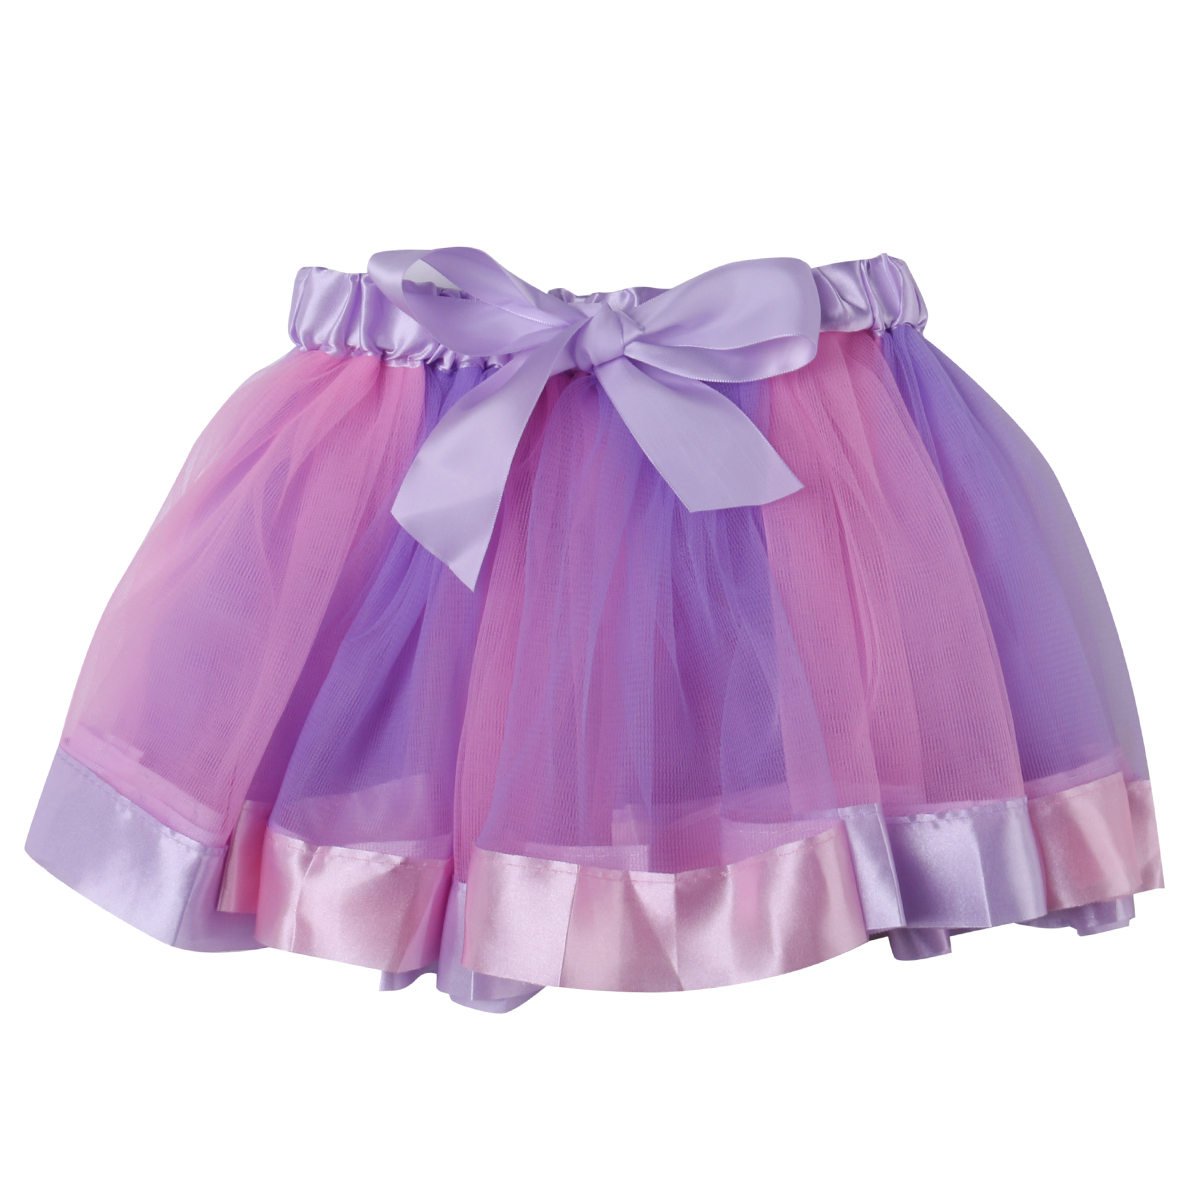 Aliexpress Buy Pudcoco Colorful Baby Kids Girls Skirt Princess Tutu Party Ballet Dance Wear Clothes For 0 2Y From